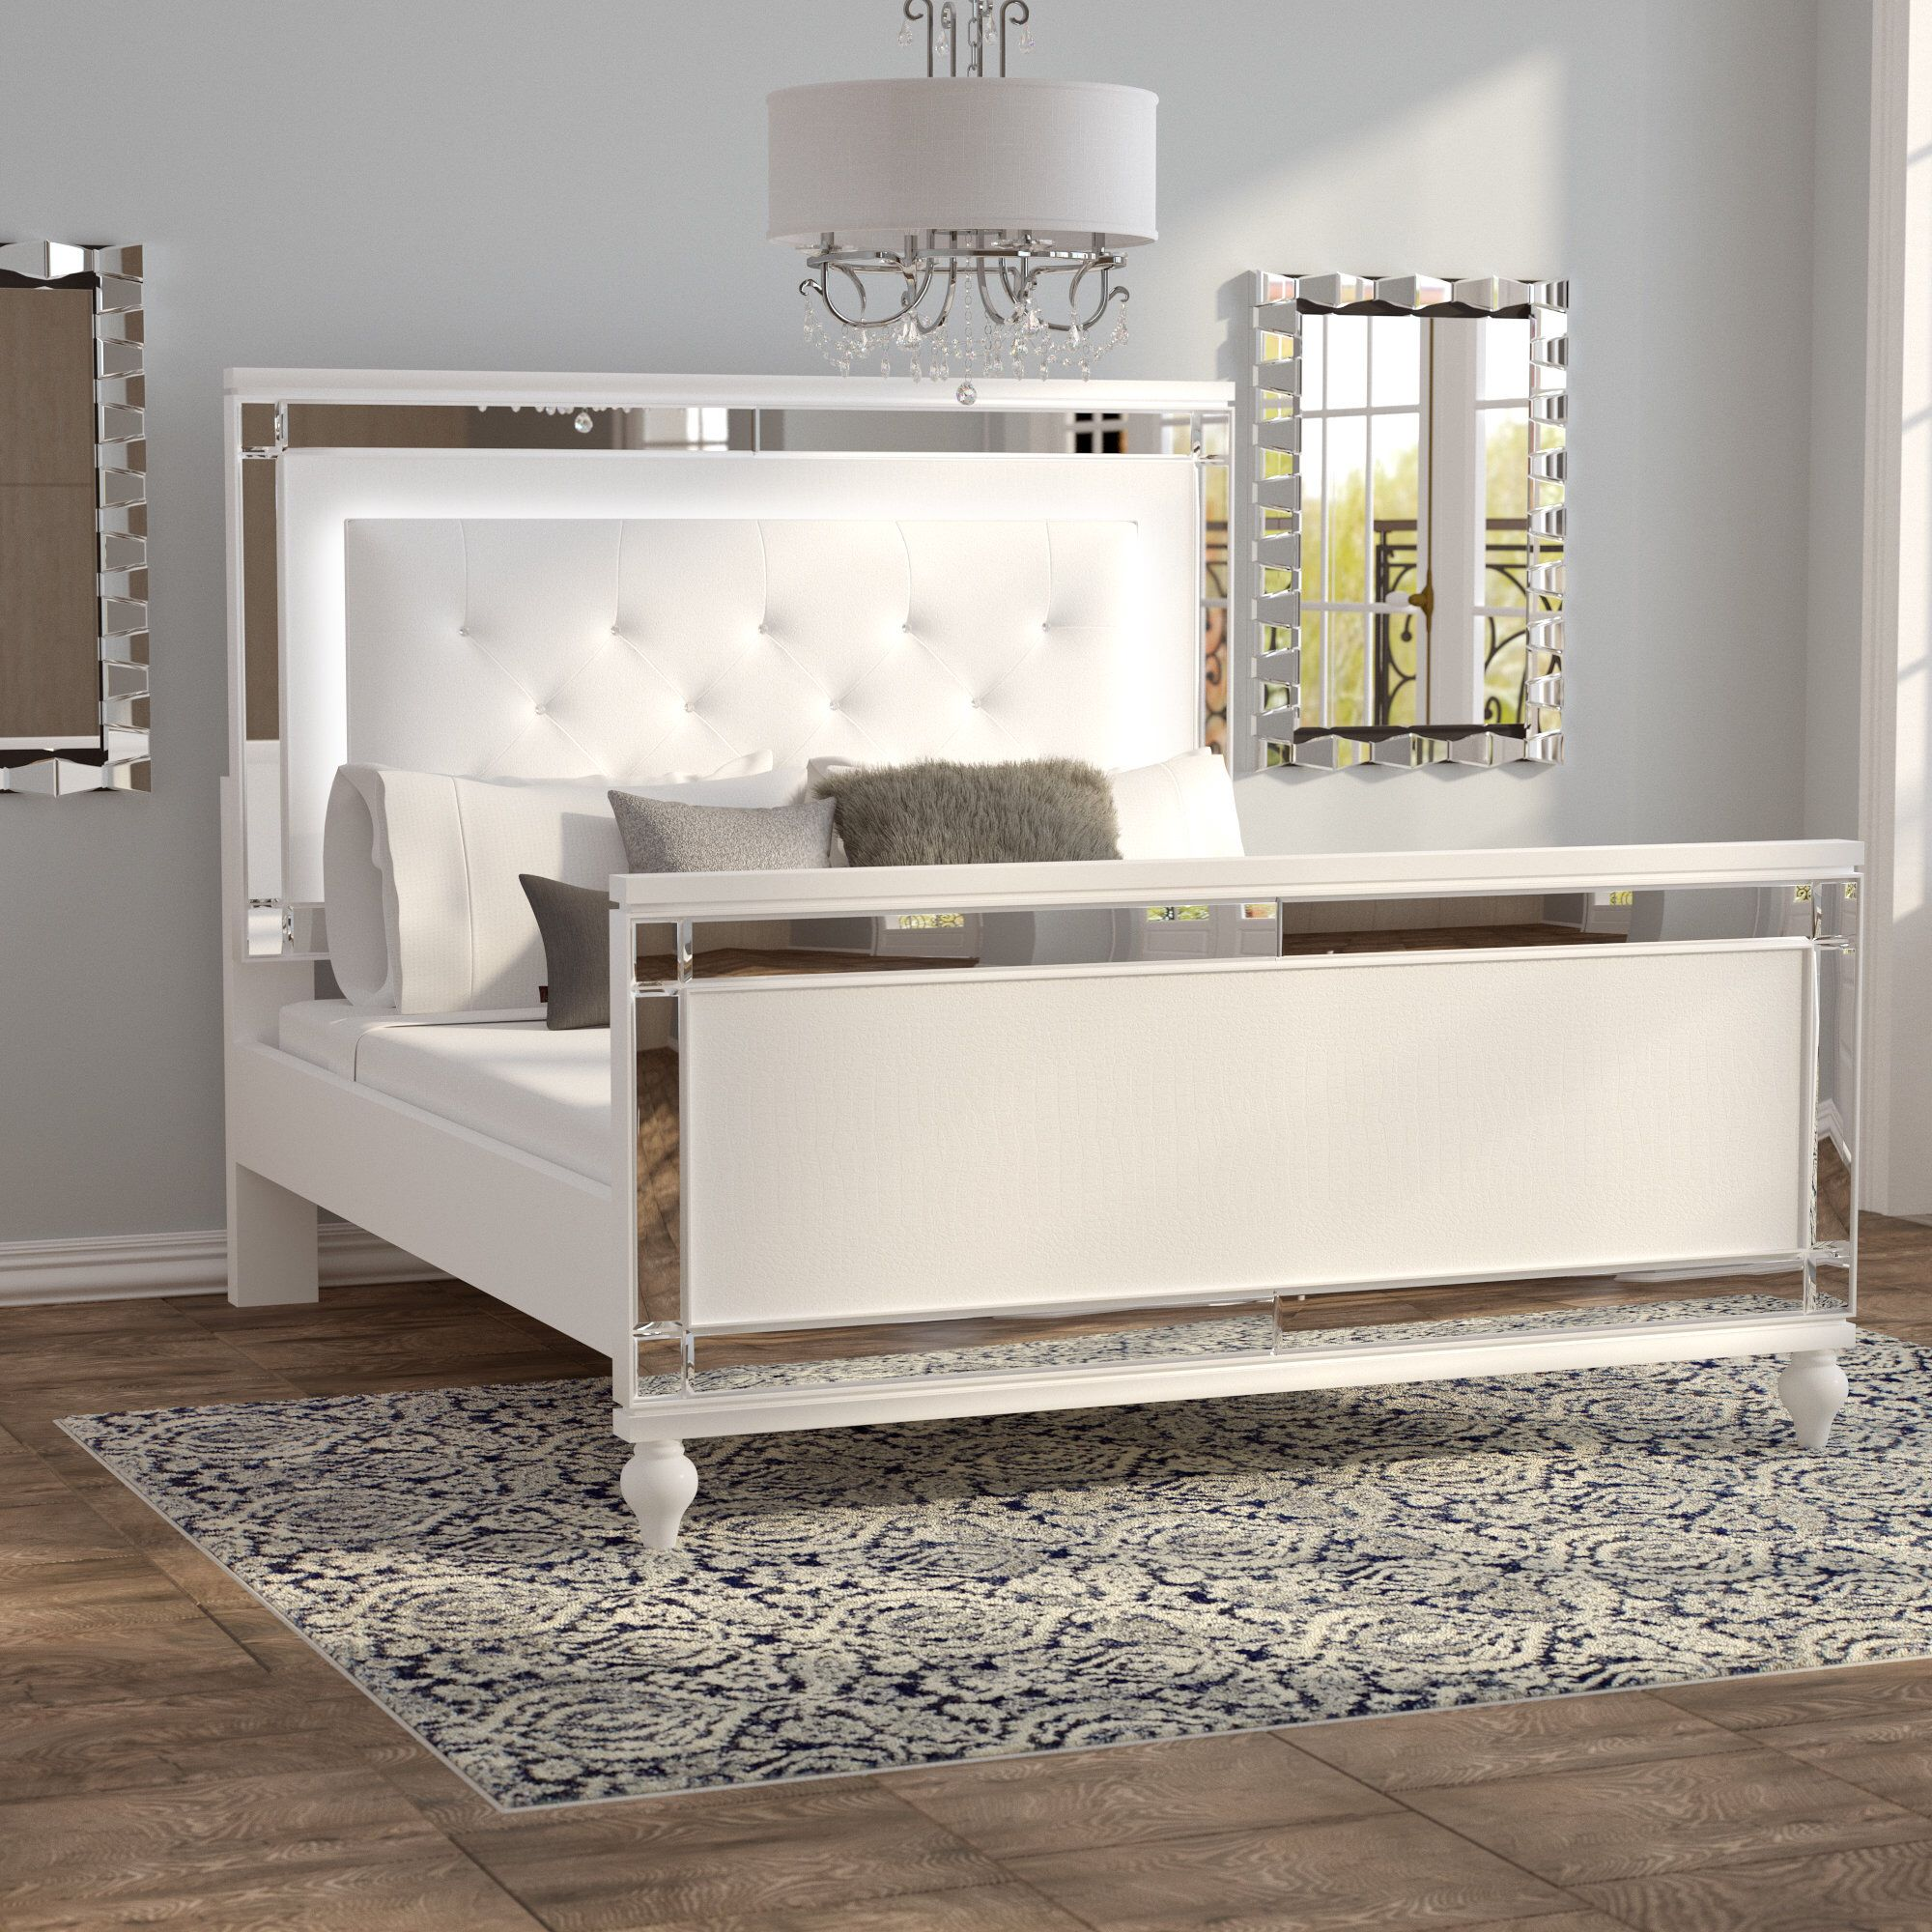 Rivage Tufted Solid Wood And Upholstered Low Profile Standard Bed Upholstered Panel Bed Upholstered Beds Glam Bedroom Decor